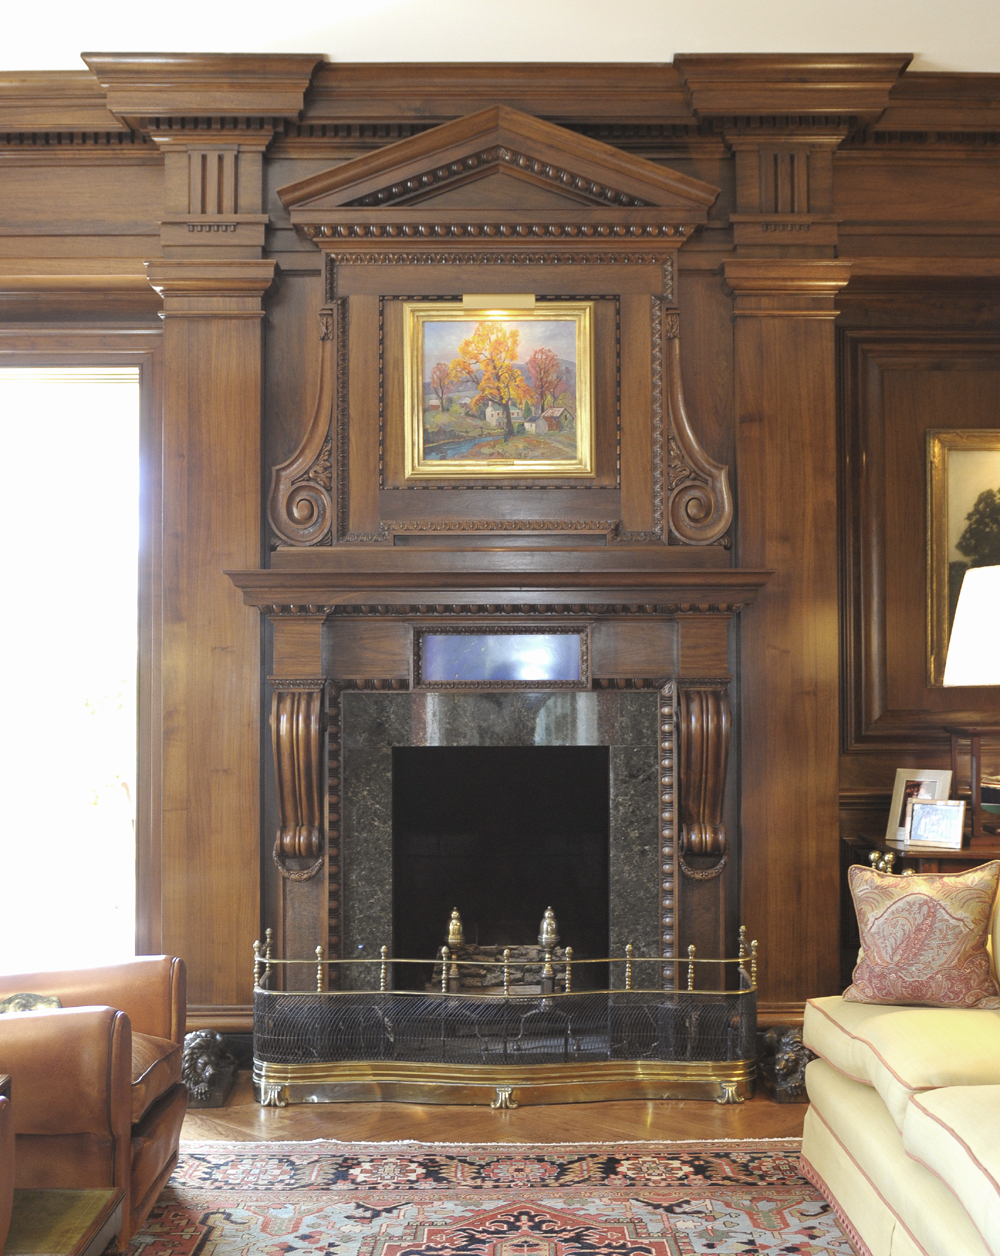 33-Private Residence Library Fireplace.jpg